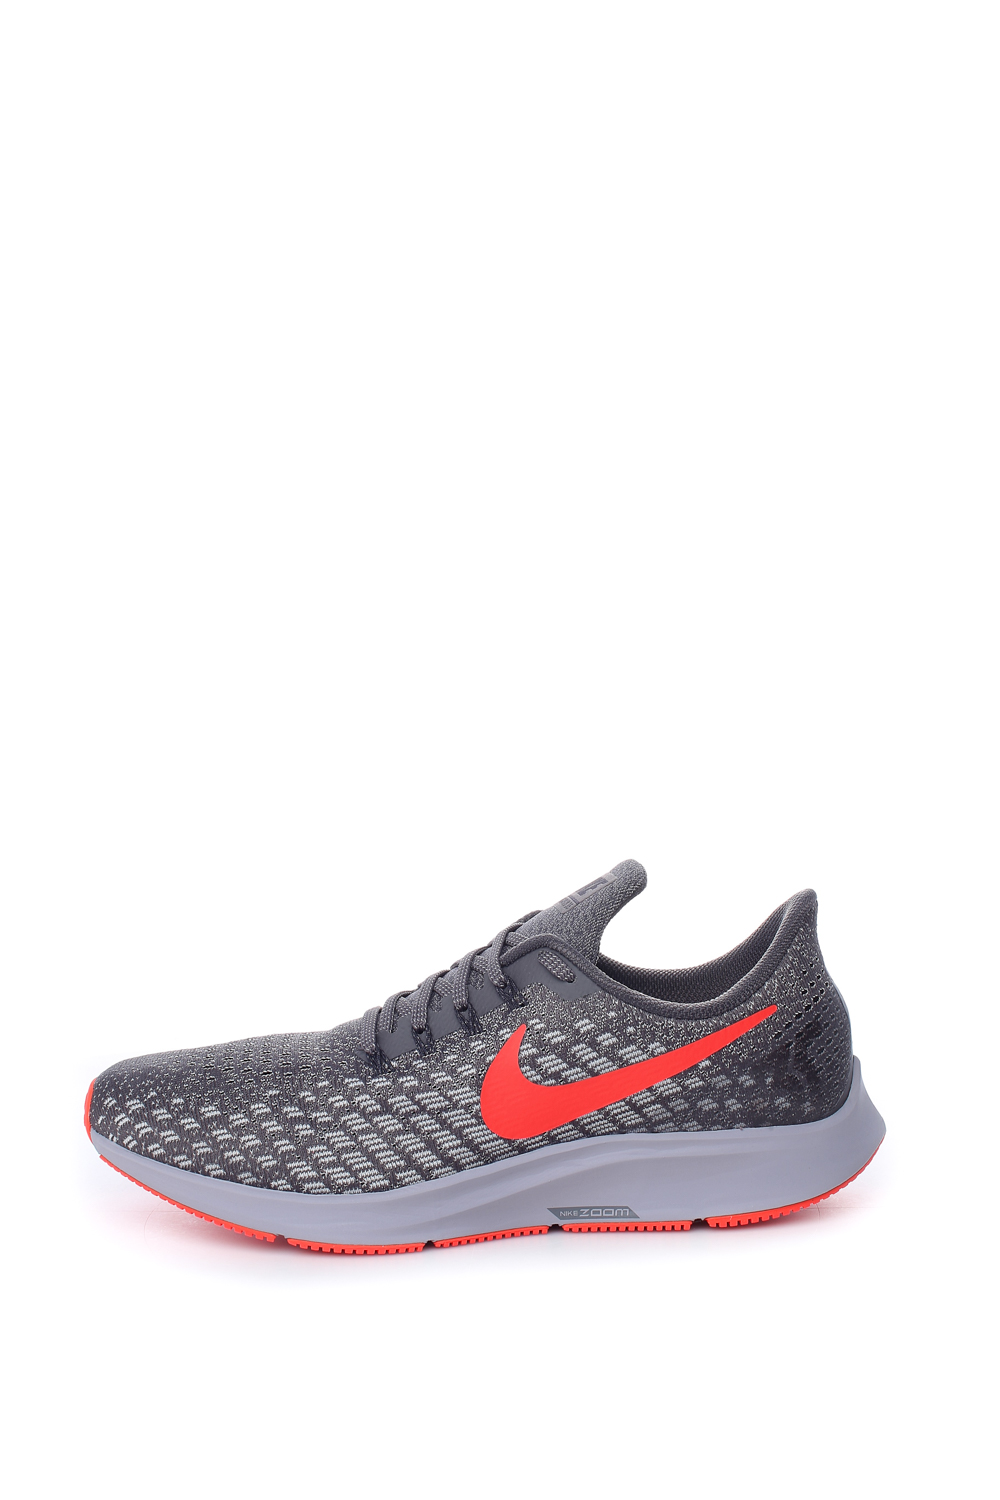 68916b5d54d -30% Factory Outlet NIKE – Ανδρικά παπούτσια running Nike Air Zoom Pegasus  35 γκρι